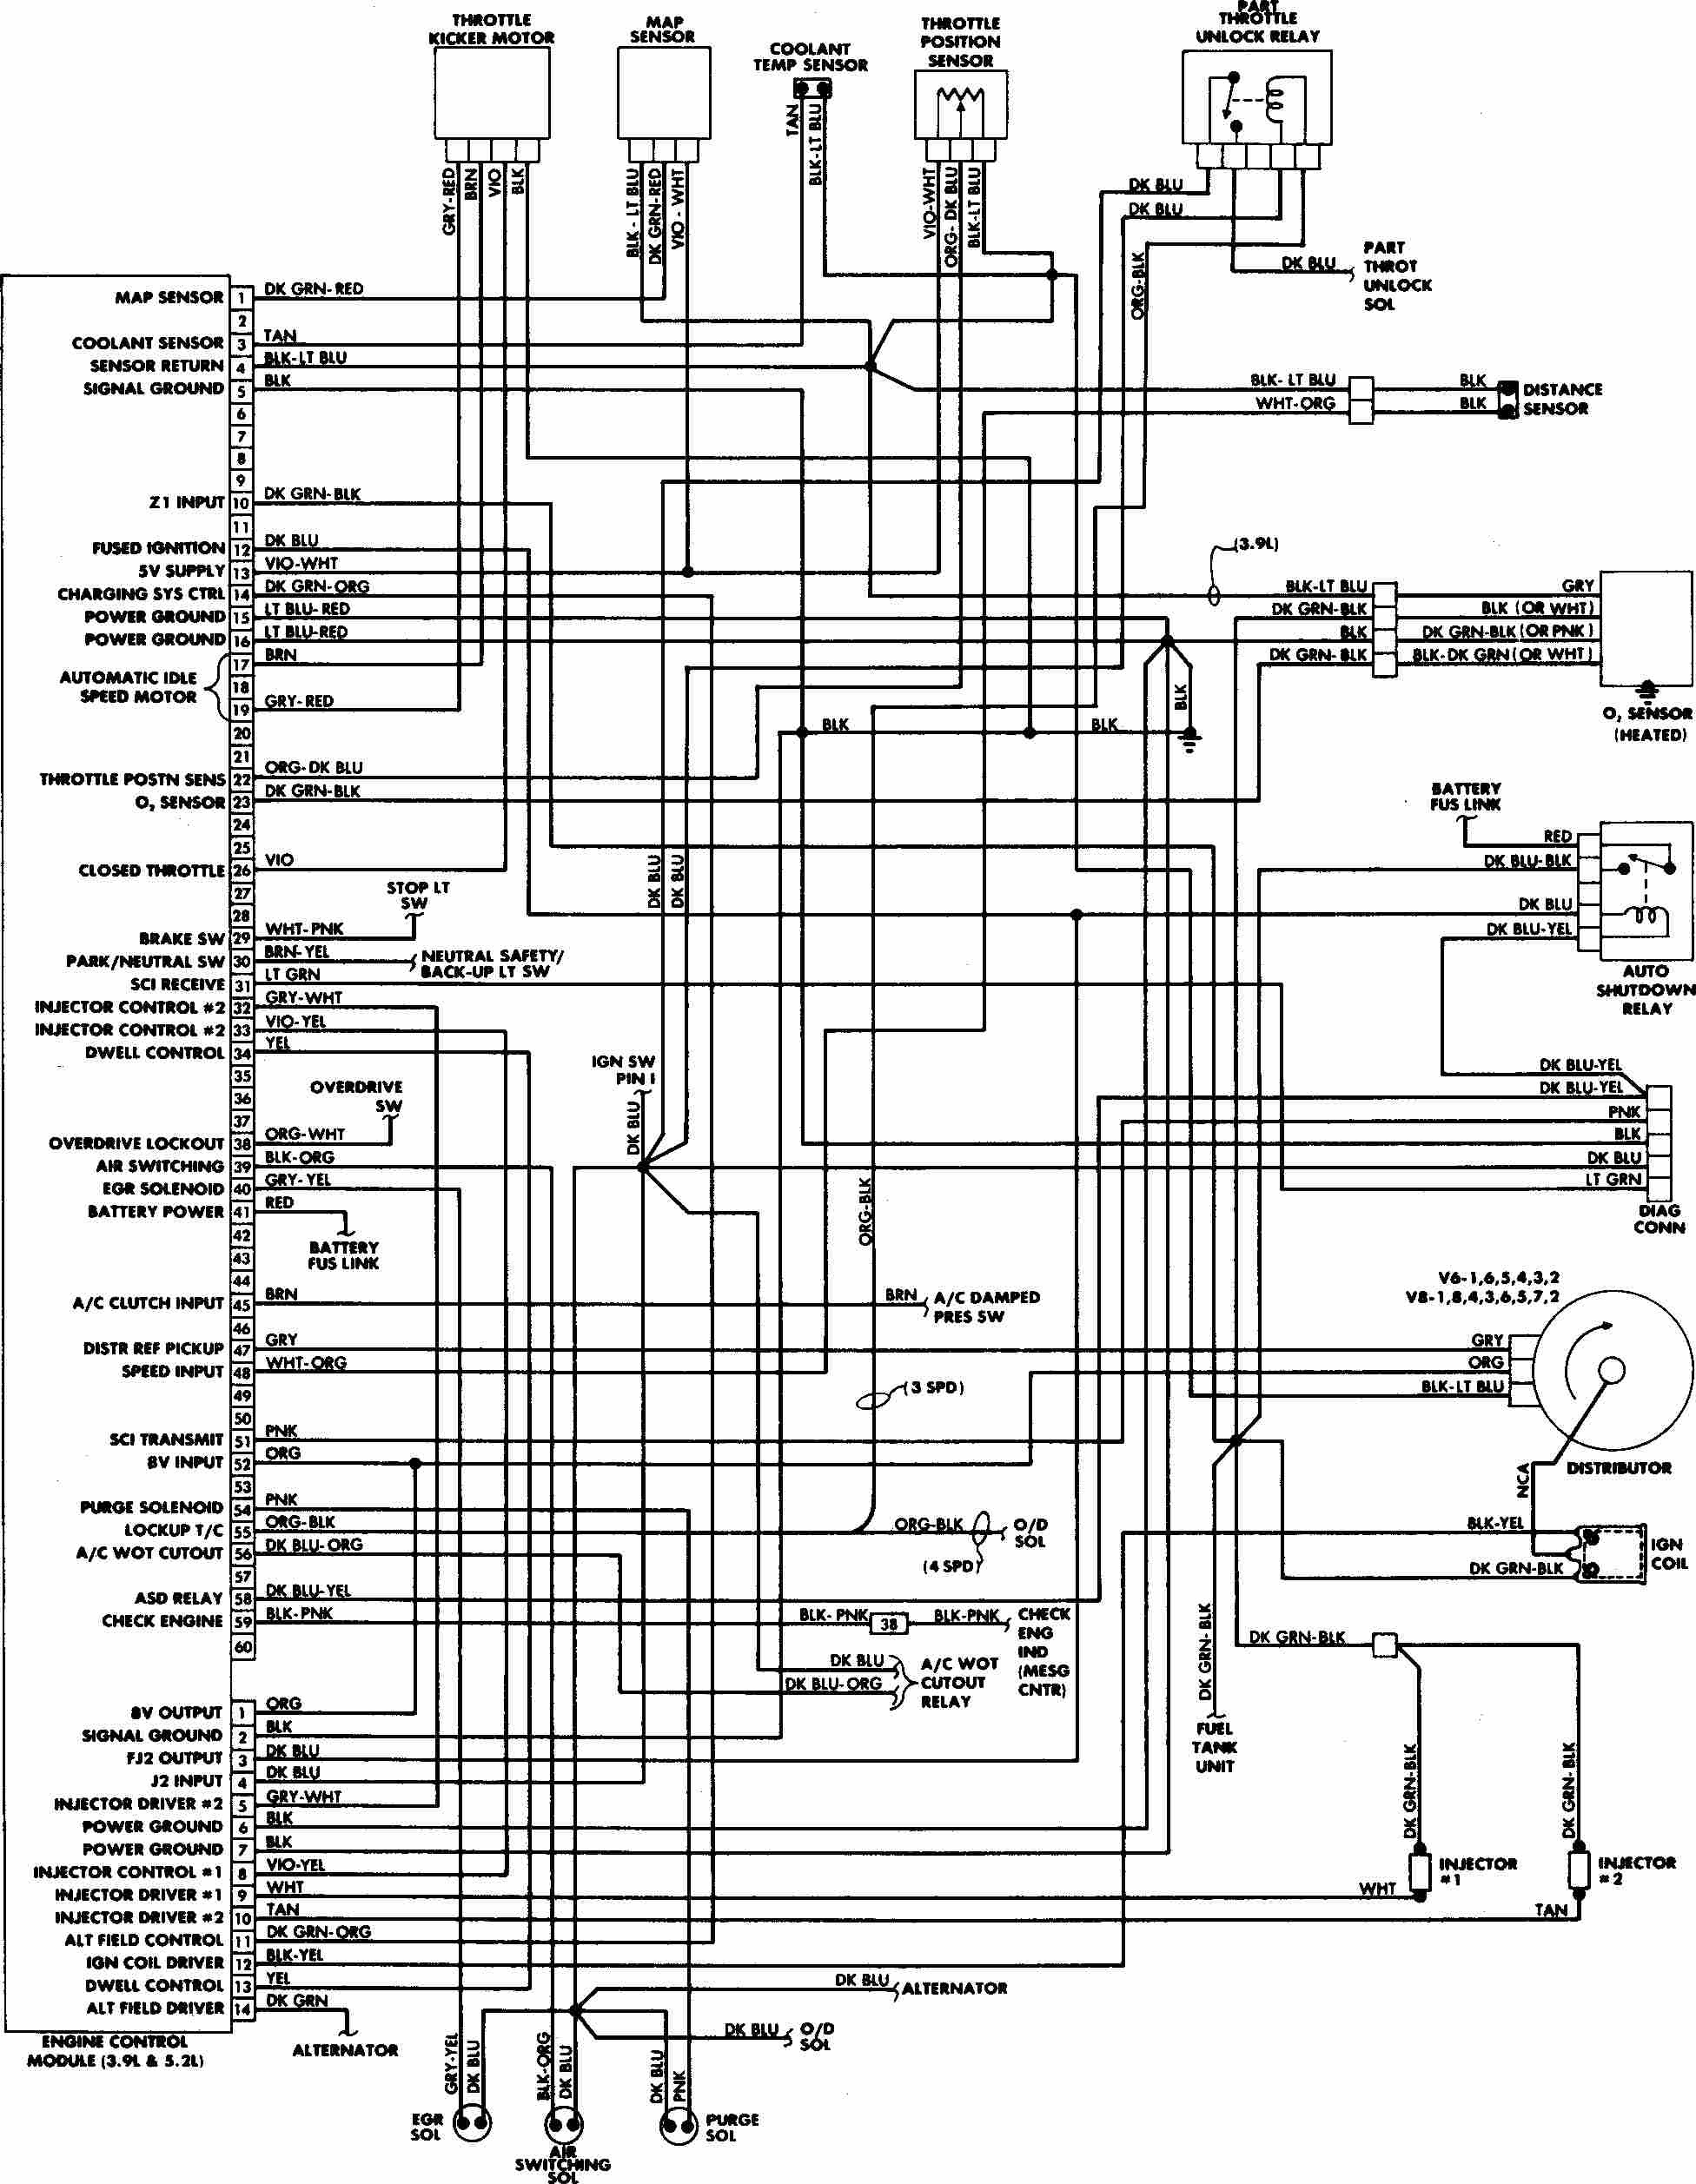 Sebring Alternator Wiring Diagram On Wiring Diagram Dodge Alternator